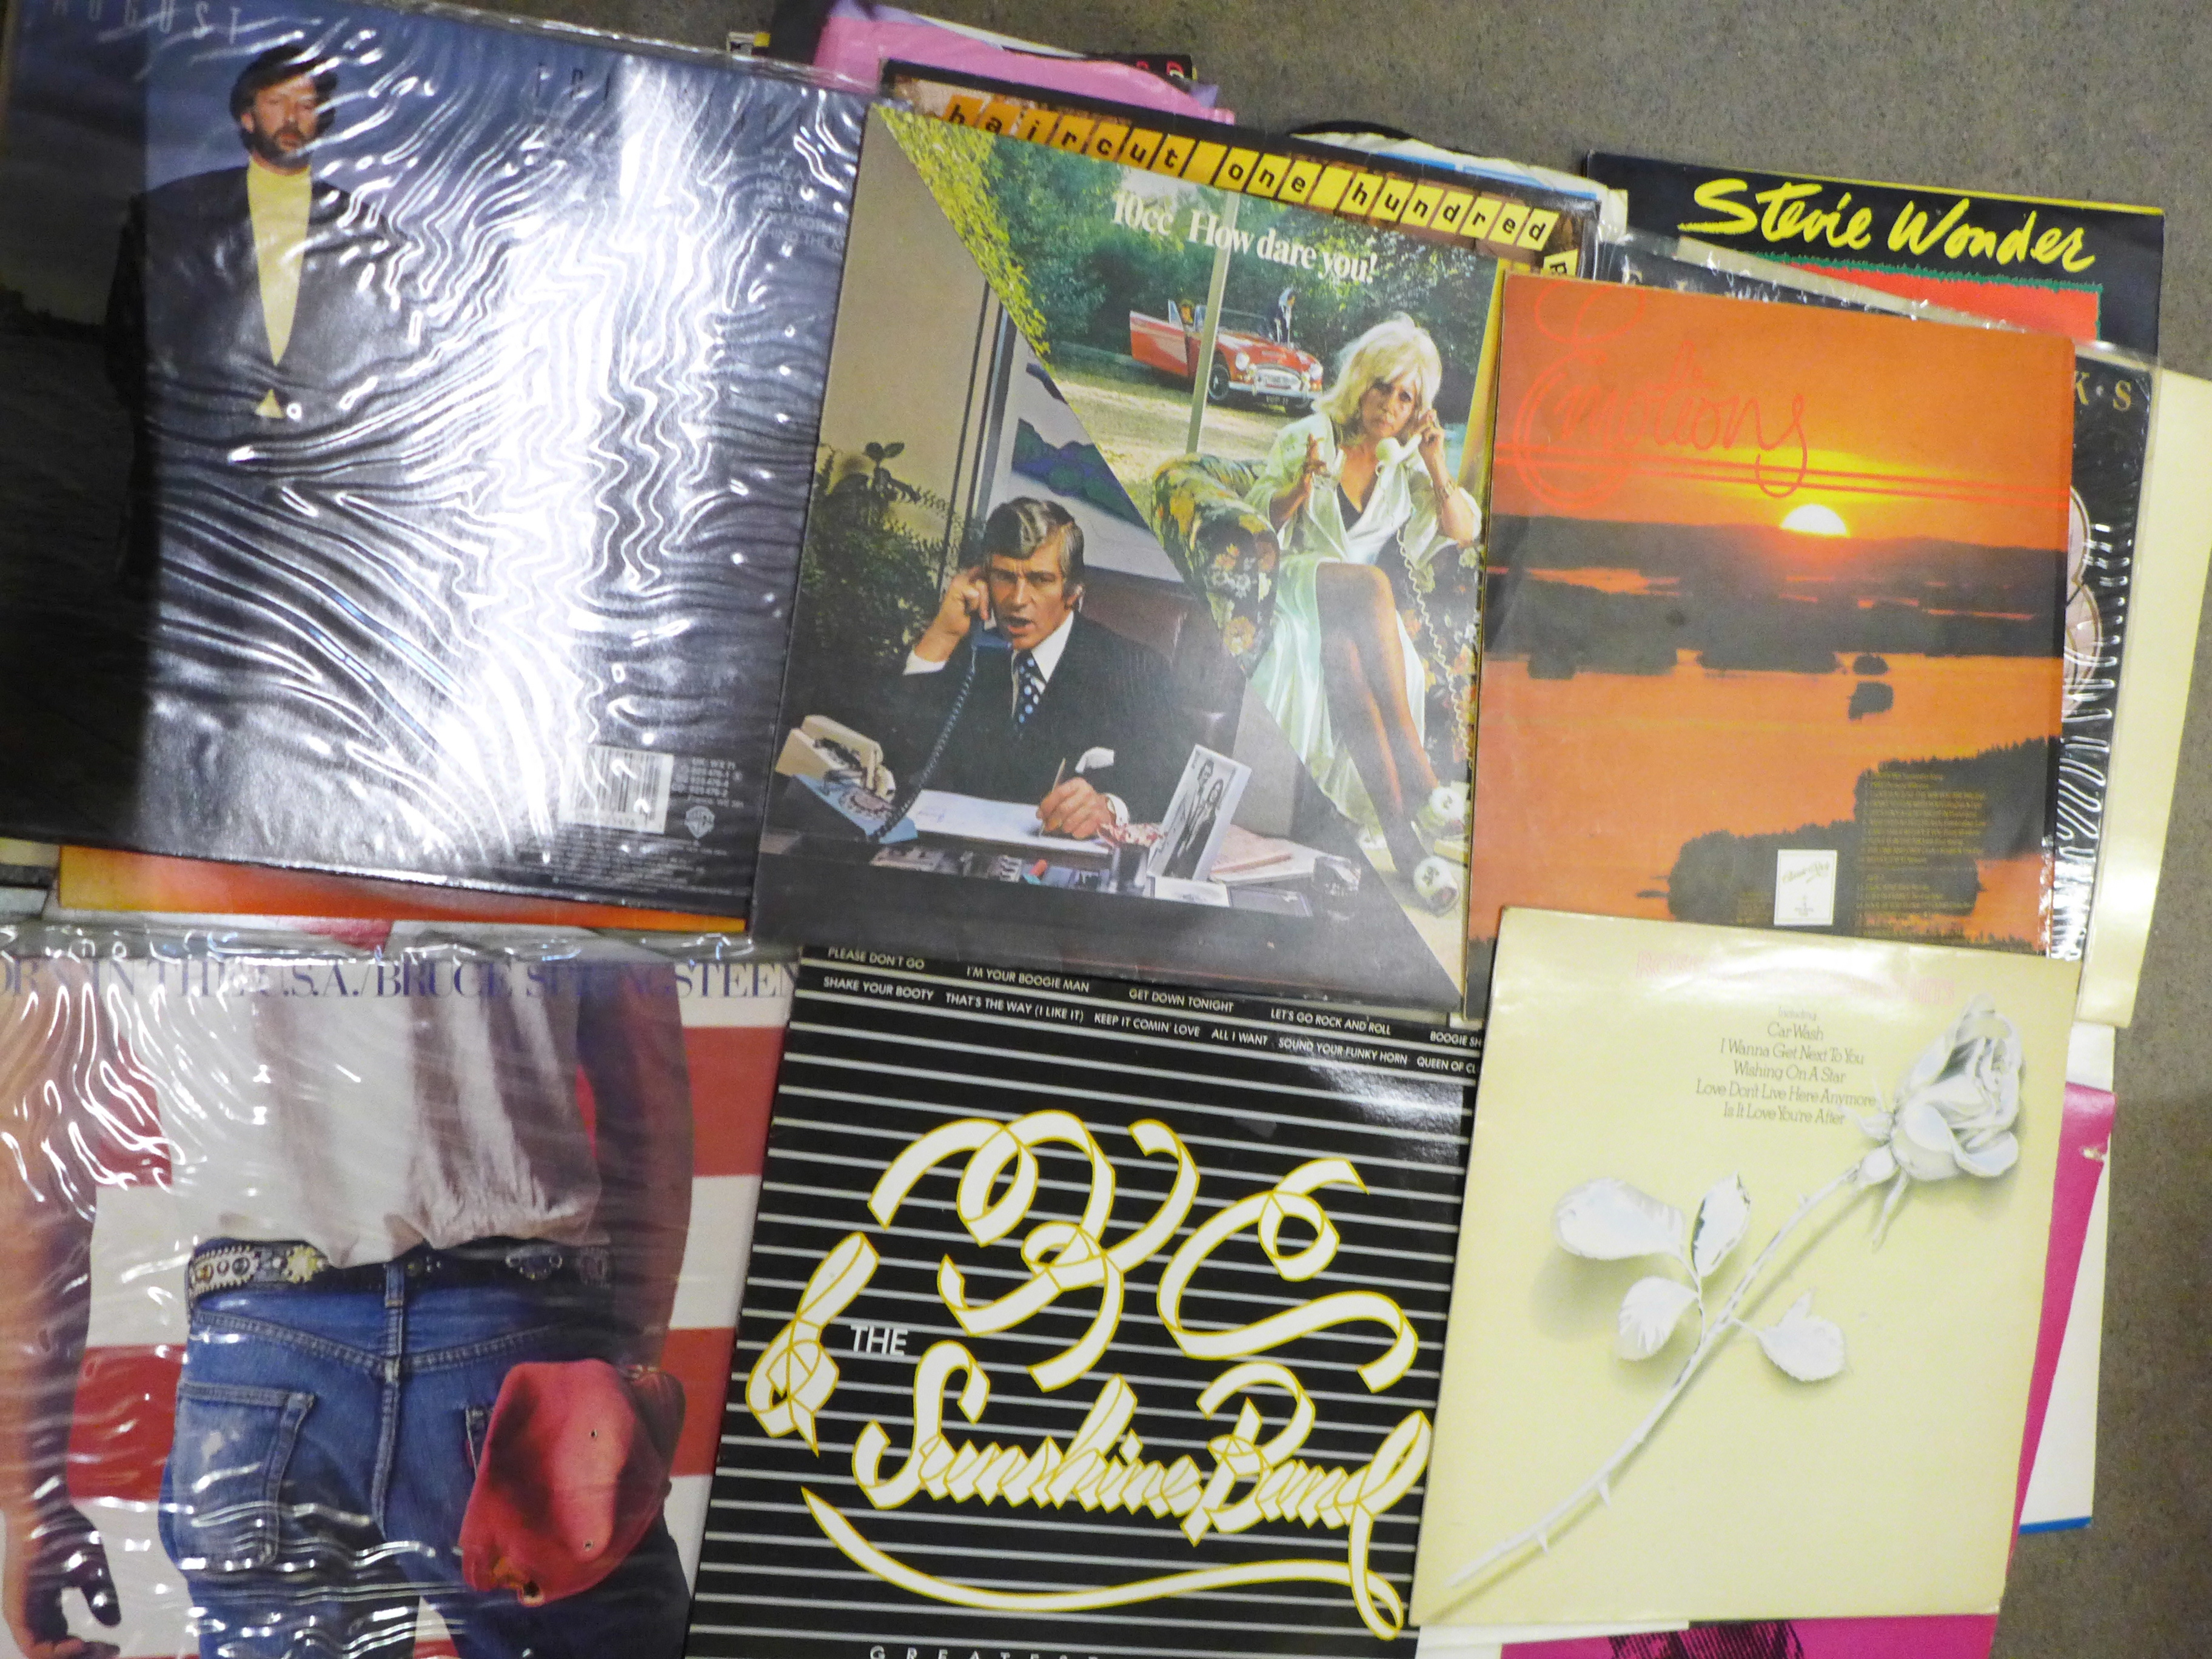 """A collection of LP records and 7"""" 45rpm singles including Bruce Springsteen, 10cc, Gladys Knight, - Image 4 of 4"""